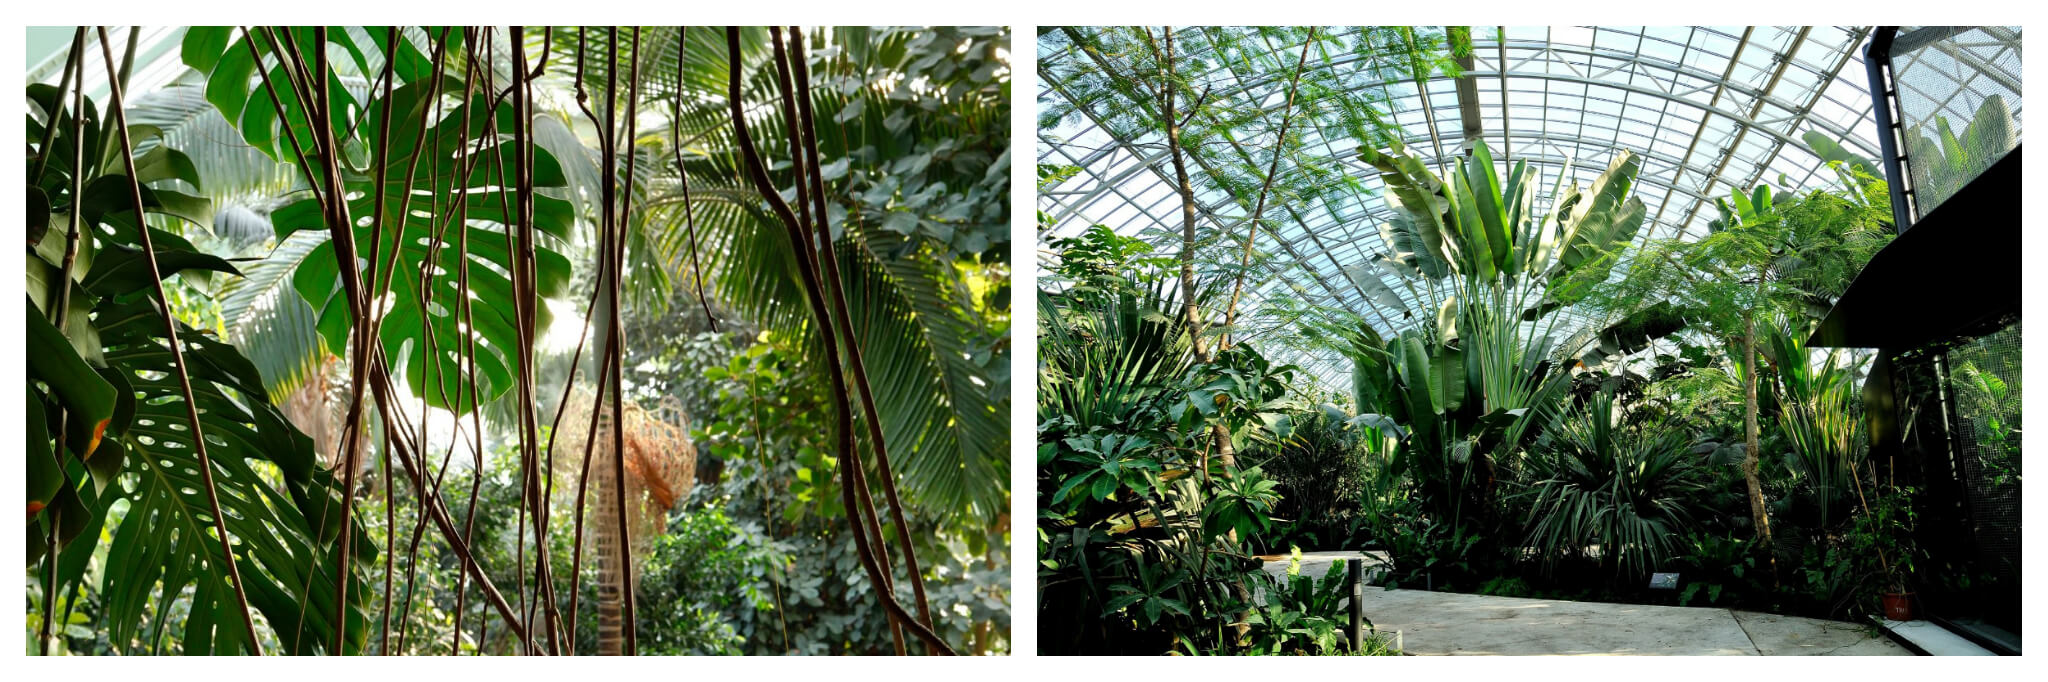 Beautiful, bright green plants grow in the greenhouse of the Jardin de Plantes in Paris' left bank